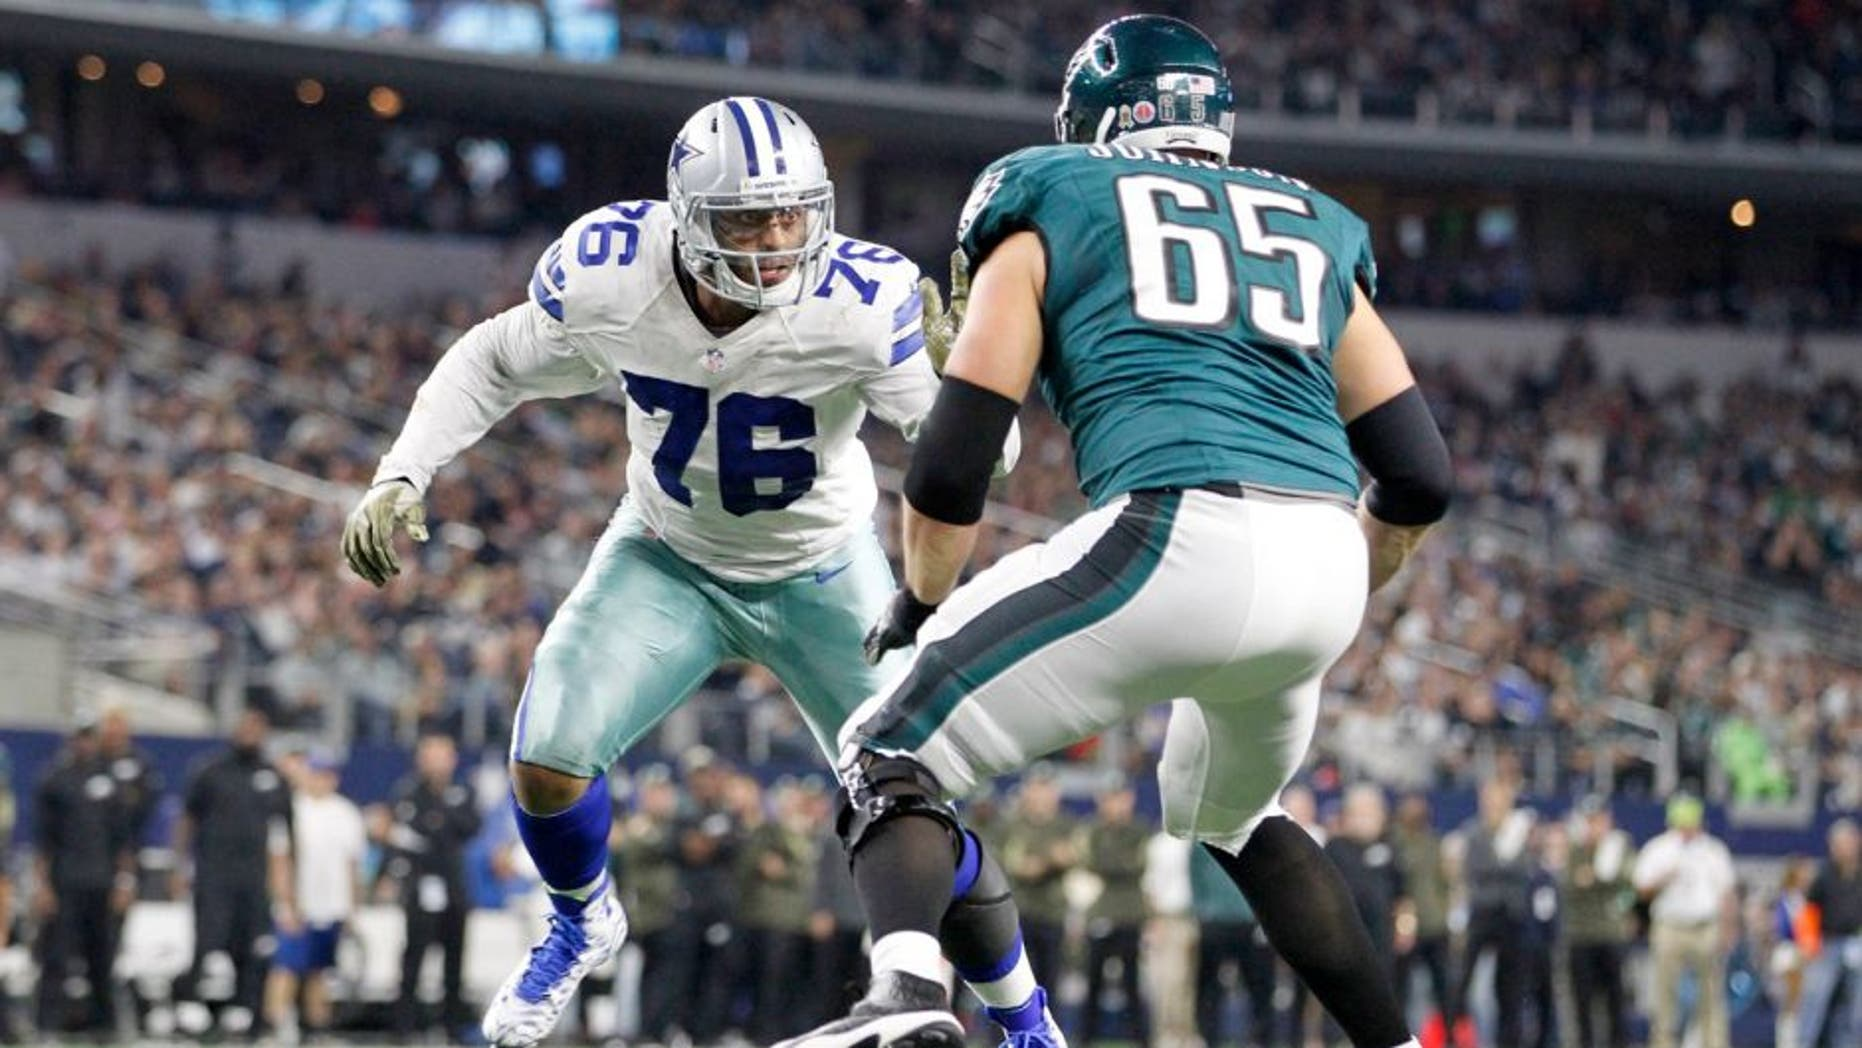 Nov 8, 2015; Arlington, TX, USA; Dallas Cowboys defensive end Greg Hardy (76) rushes the passer against Philadelphia Eagles tackle Lane Johnson (65) in the third quarterat AT&T Stadium. Mandatory Credit: Tim Heitman-USA TODAY Sports